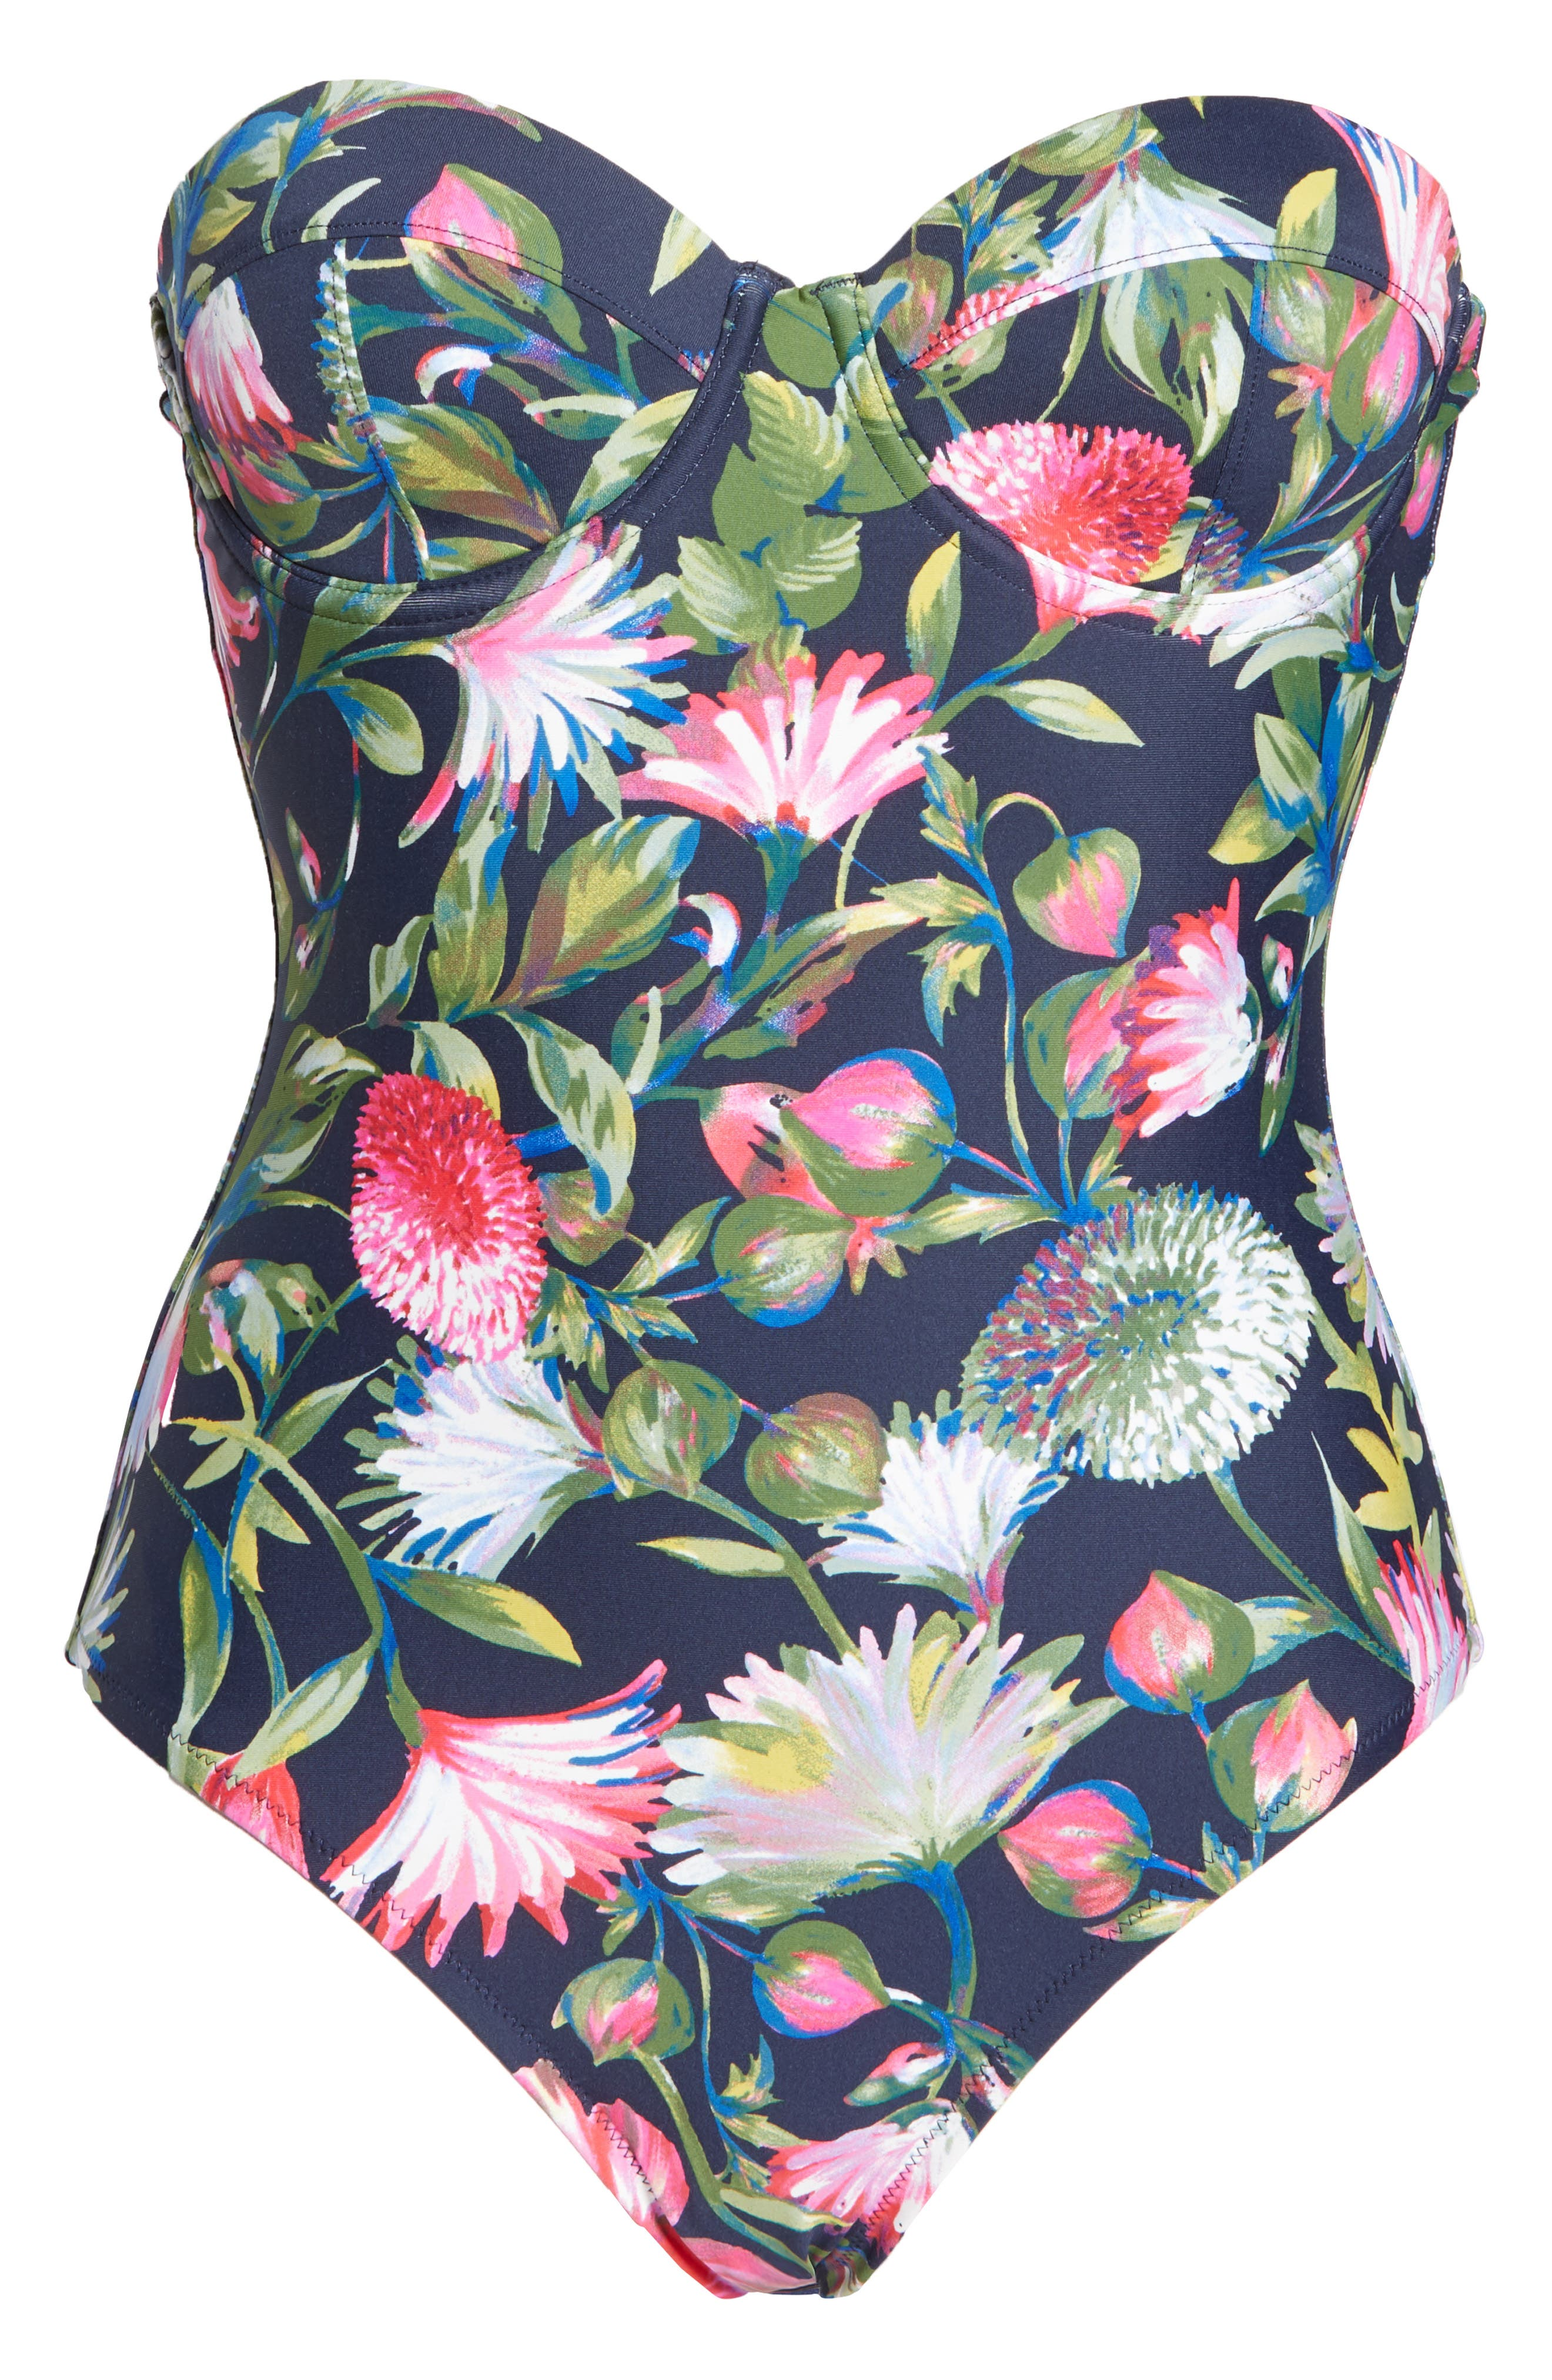 J.CREW, Floral Underwire One-Piece Swimsuit, Alternate thumbnail 7, color, NAVY